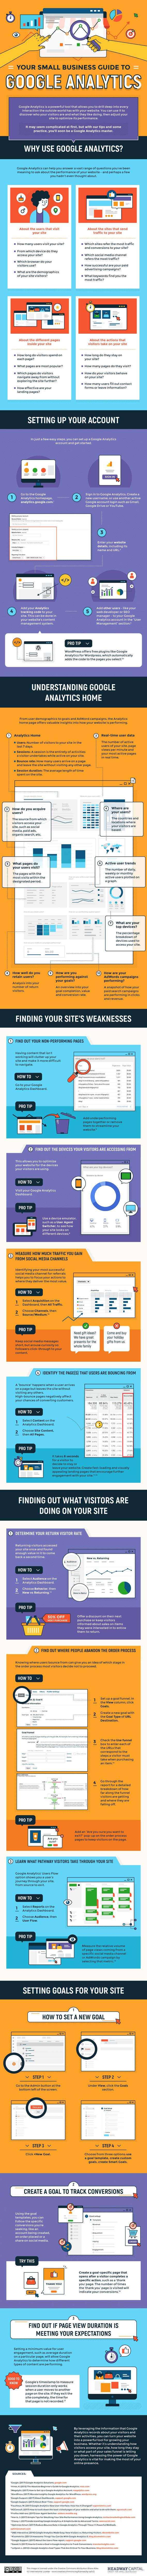 Your Small Business Guide to Google Analytics Infographic